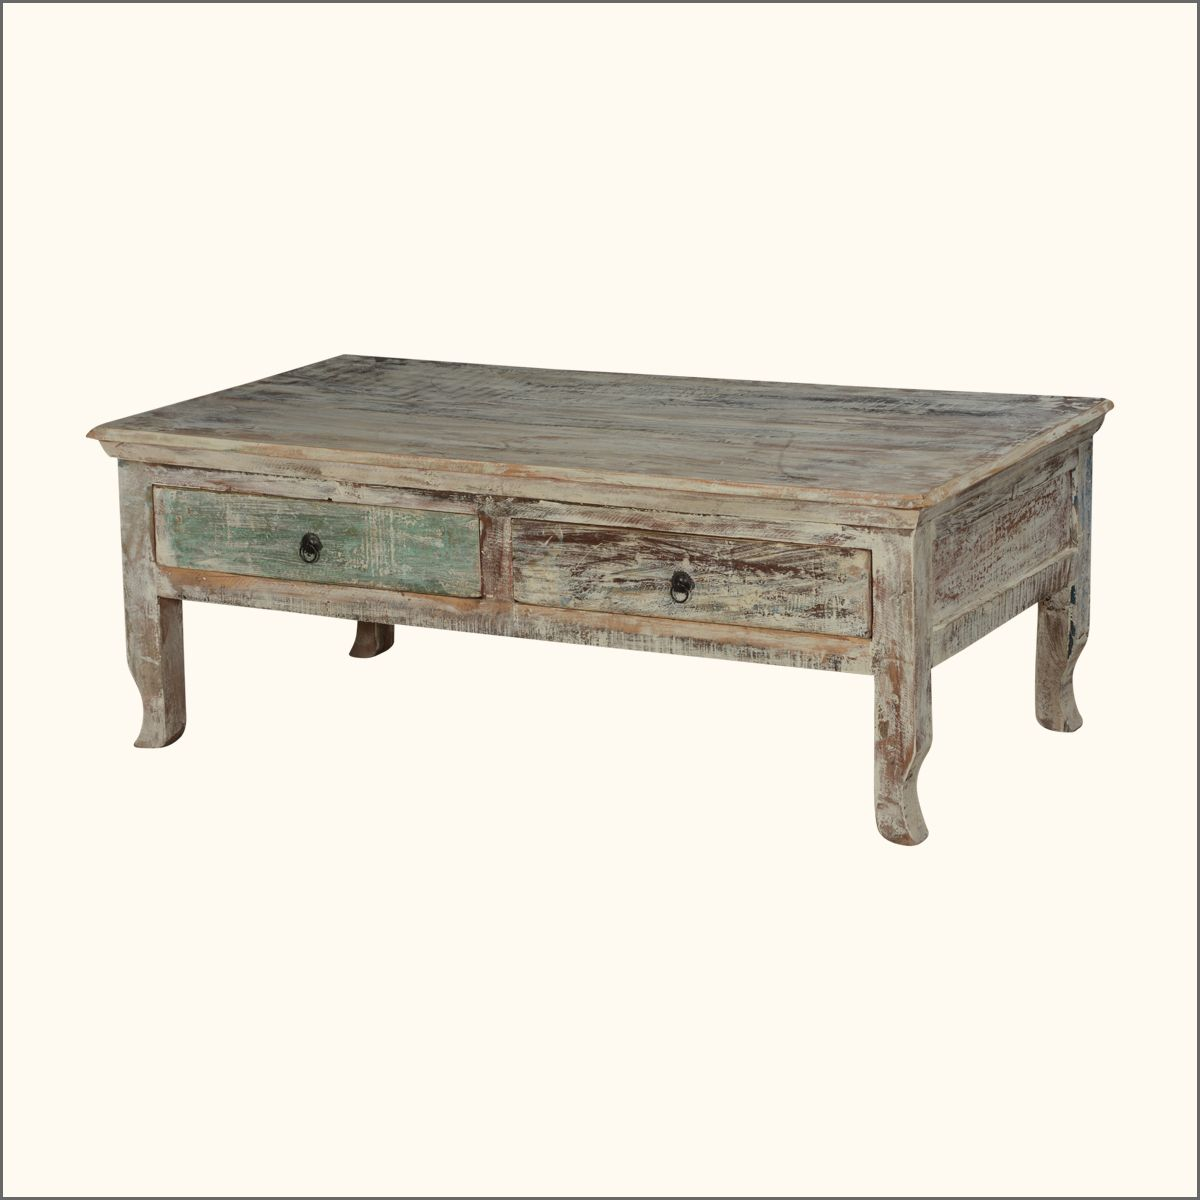 Winter Storm Reclaimed Wood Coffee Table W 2 Drawers In 2021 Reclaimed Wood Furniture Coffee Table Reclaimed Wood Coffee Table [ 1200 x 1200 Pixel ]